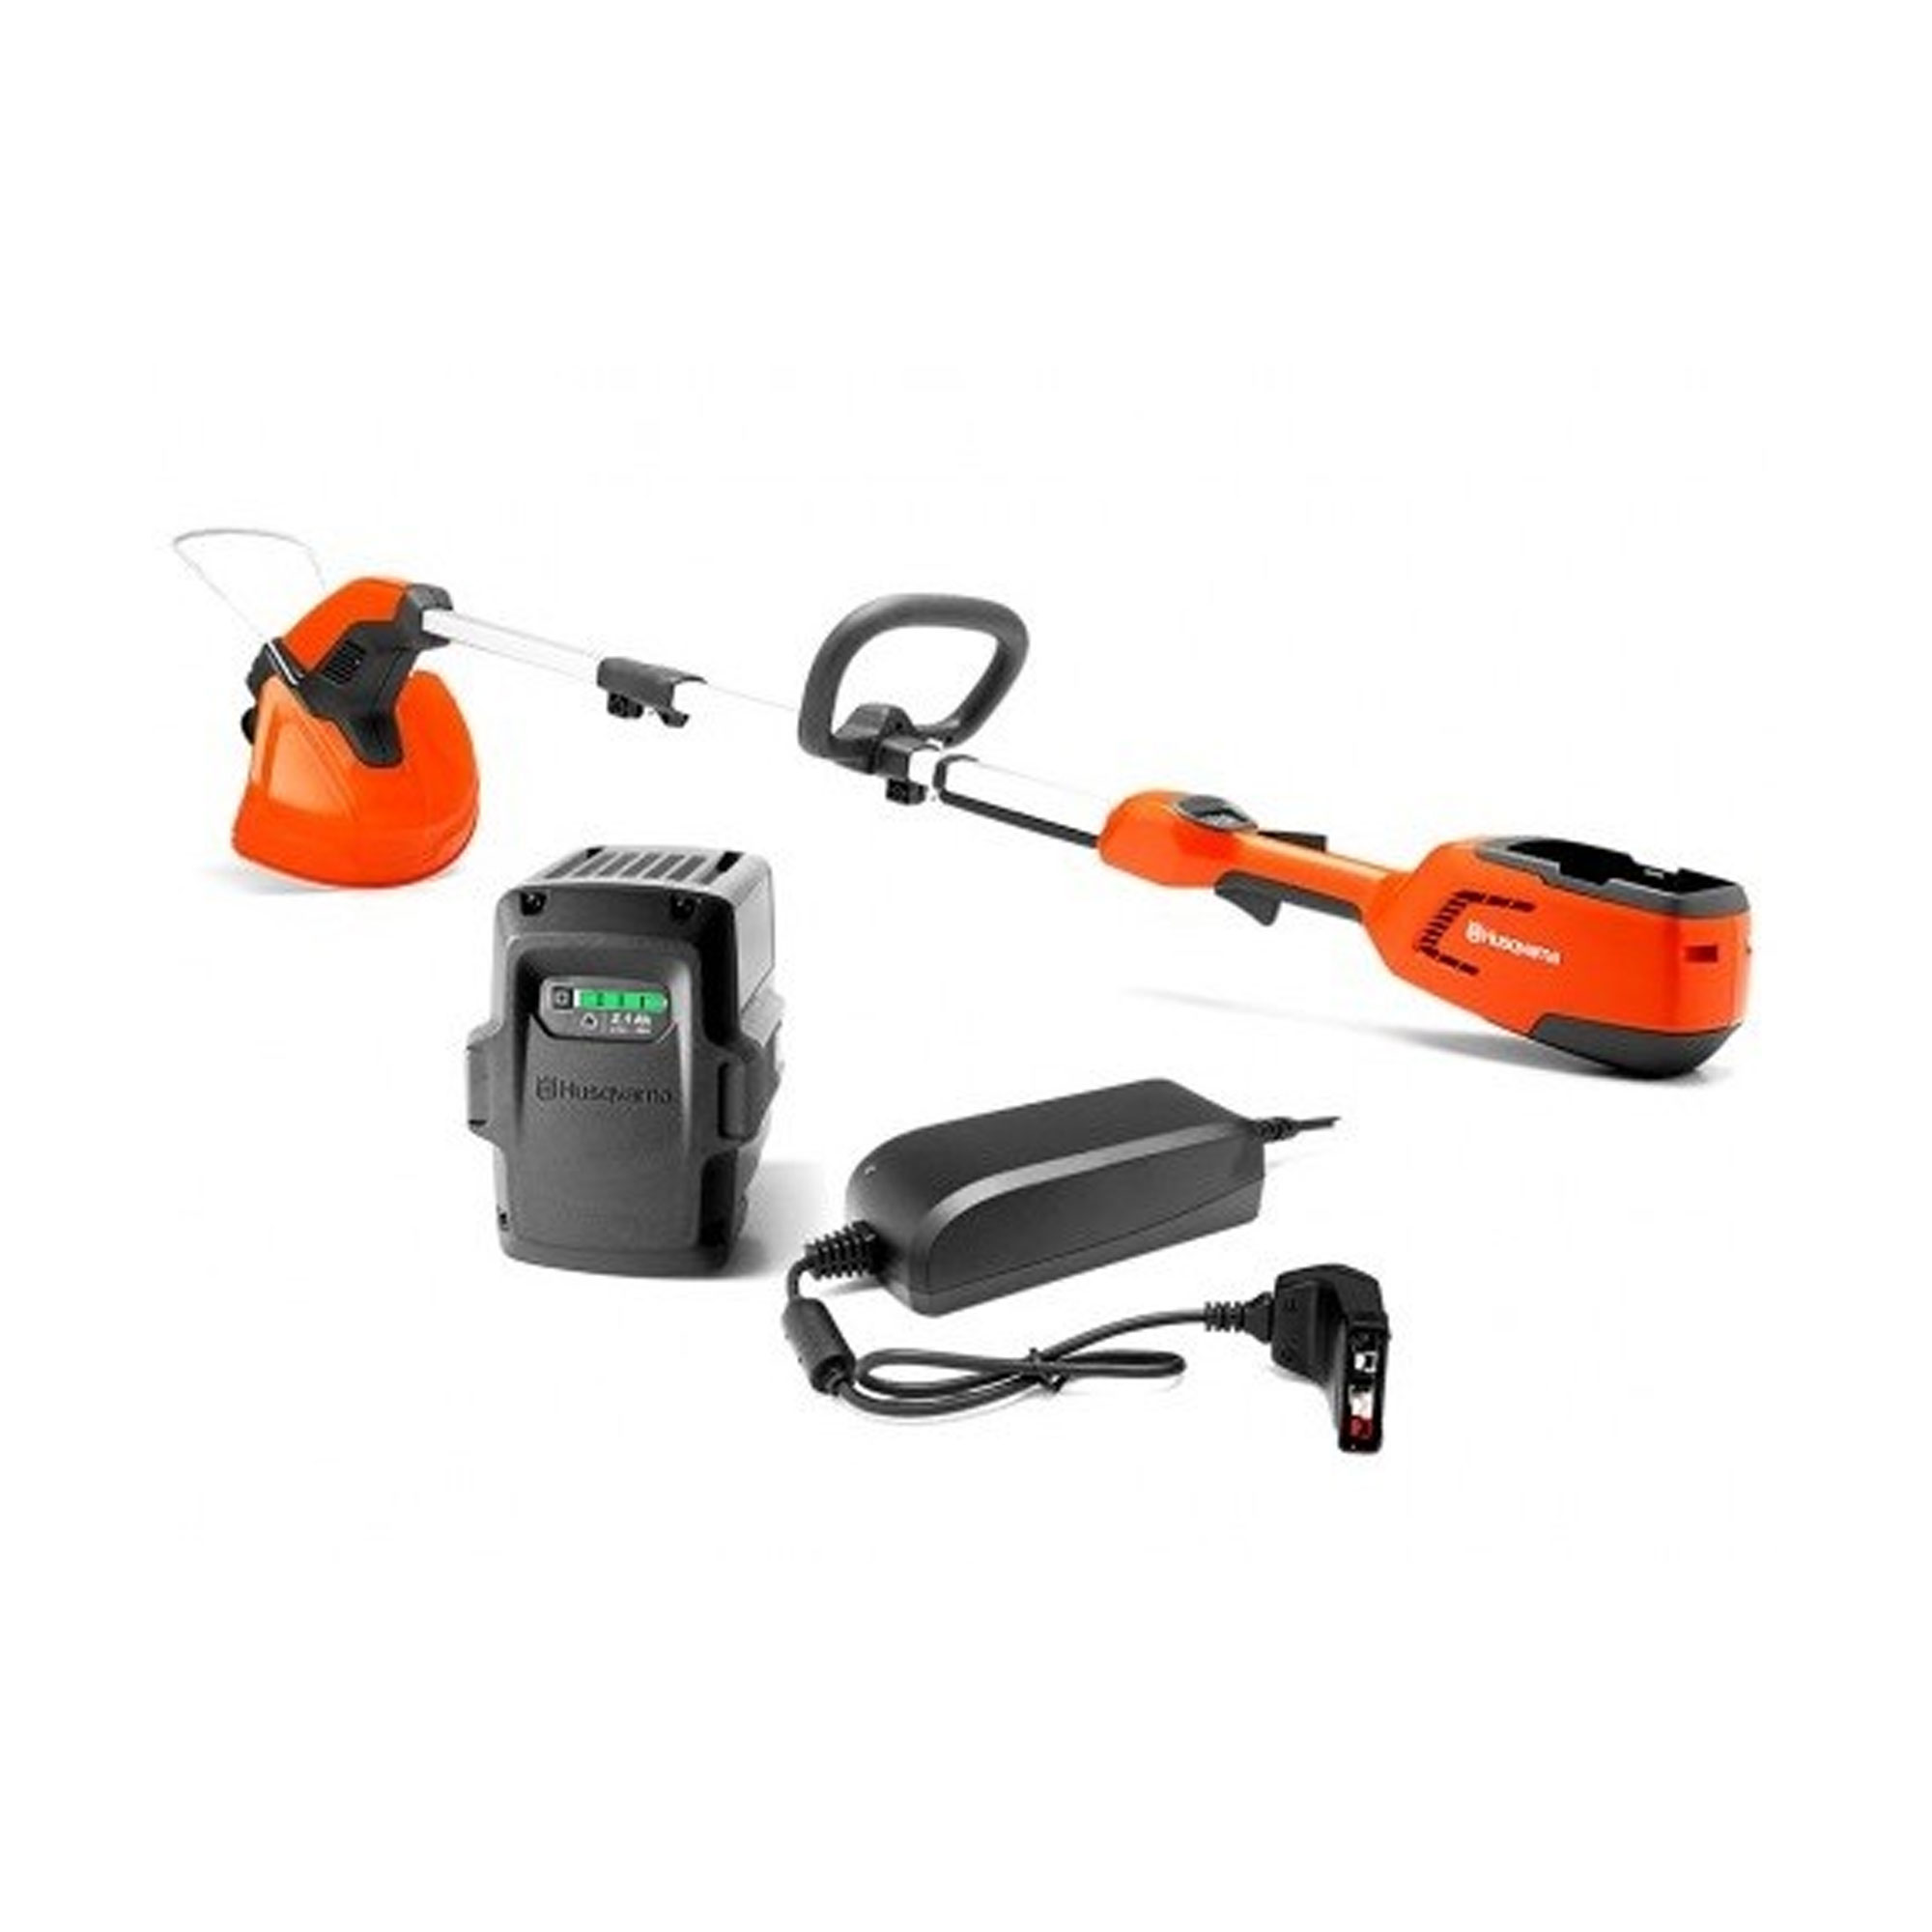 Details about Husqvarna 115iL 40V Cordless Electric String Trimmer  w/(Li-ion) Battery &Charger